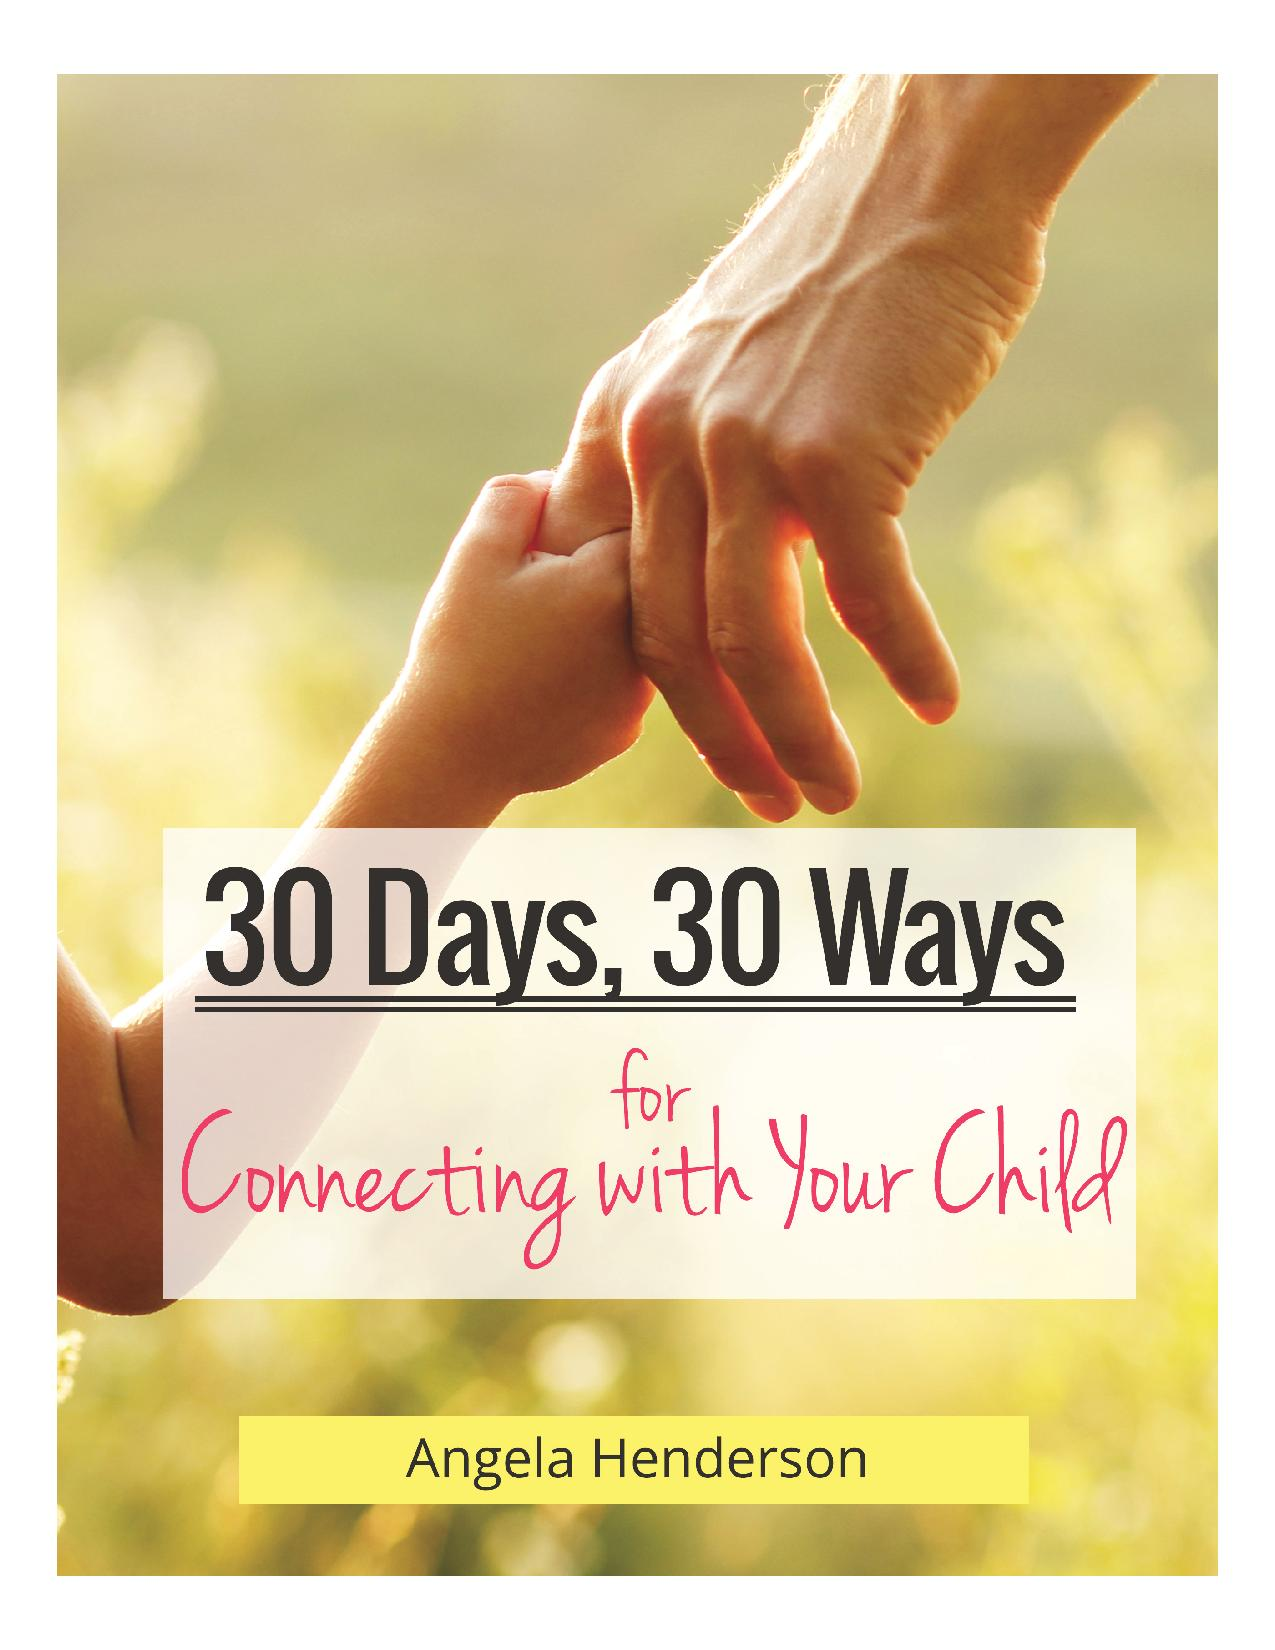 30 Days, 30 Ways for Connecting with your Child